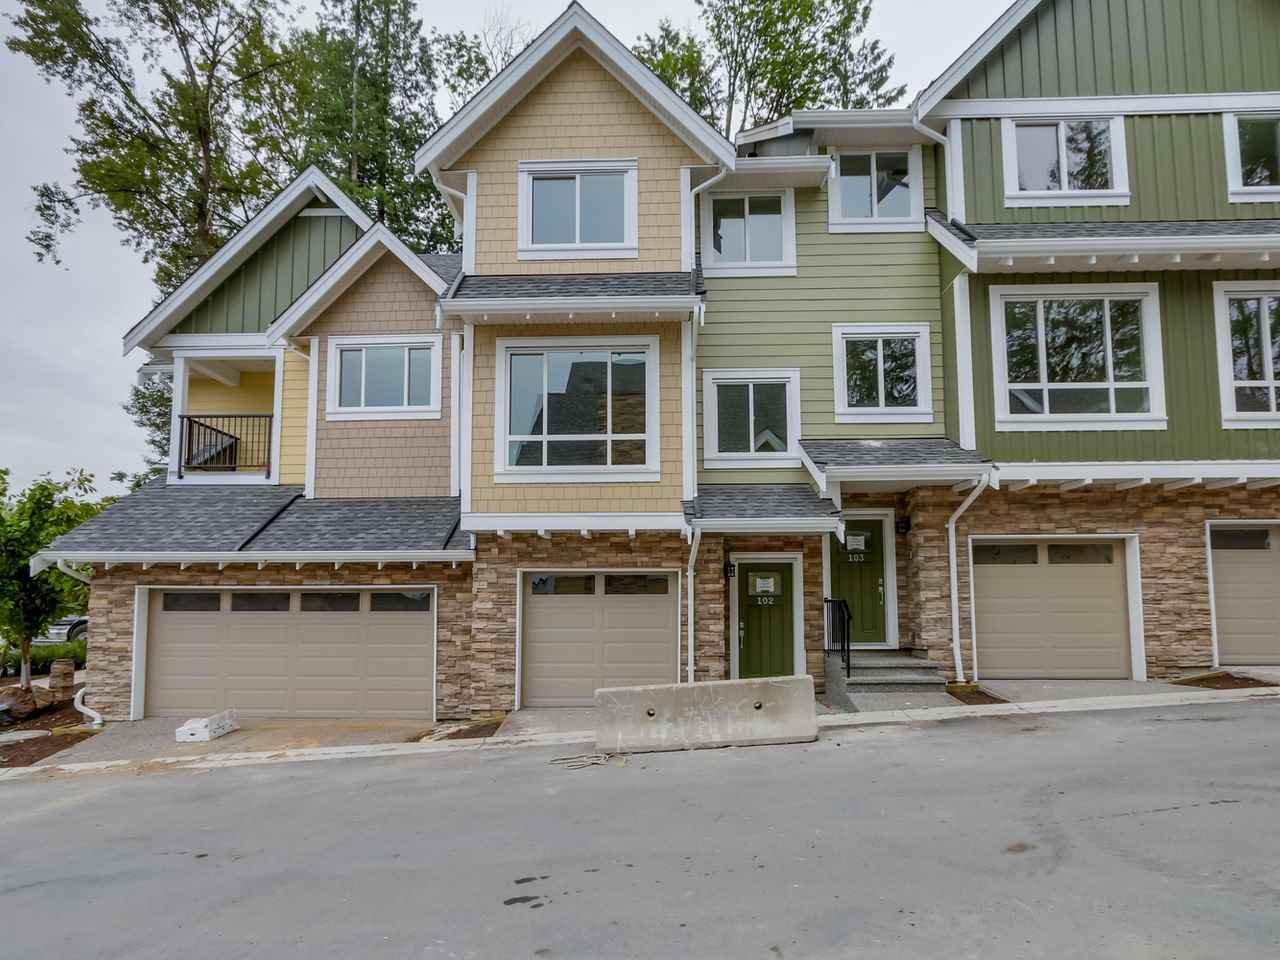 """Main Photo: 303 1405 DAYTON Street in Coquitlam: Burke Mountain Townhouse for sale in """"ERICA"""" : MLS®# R2119298"""